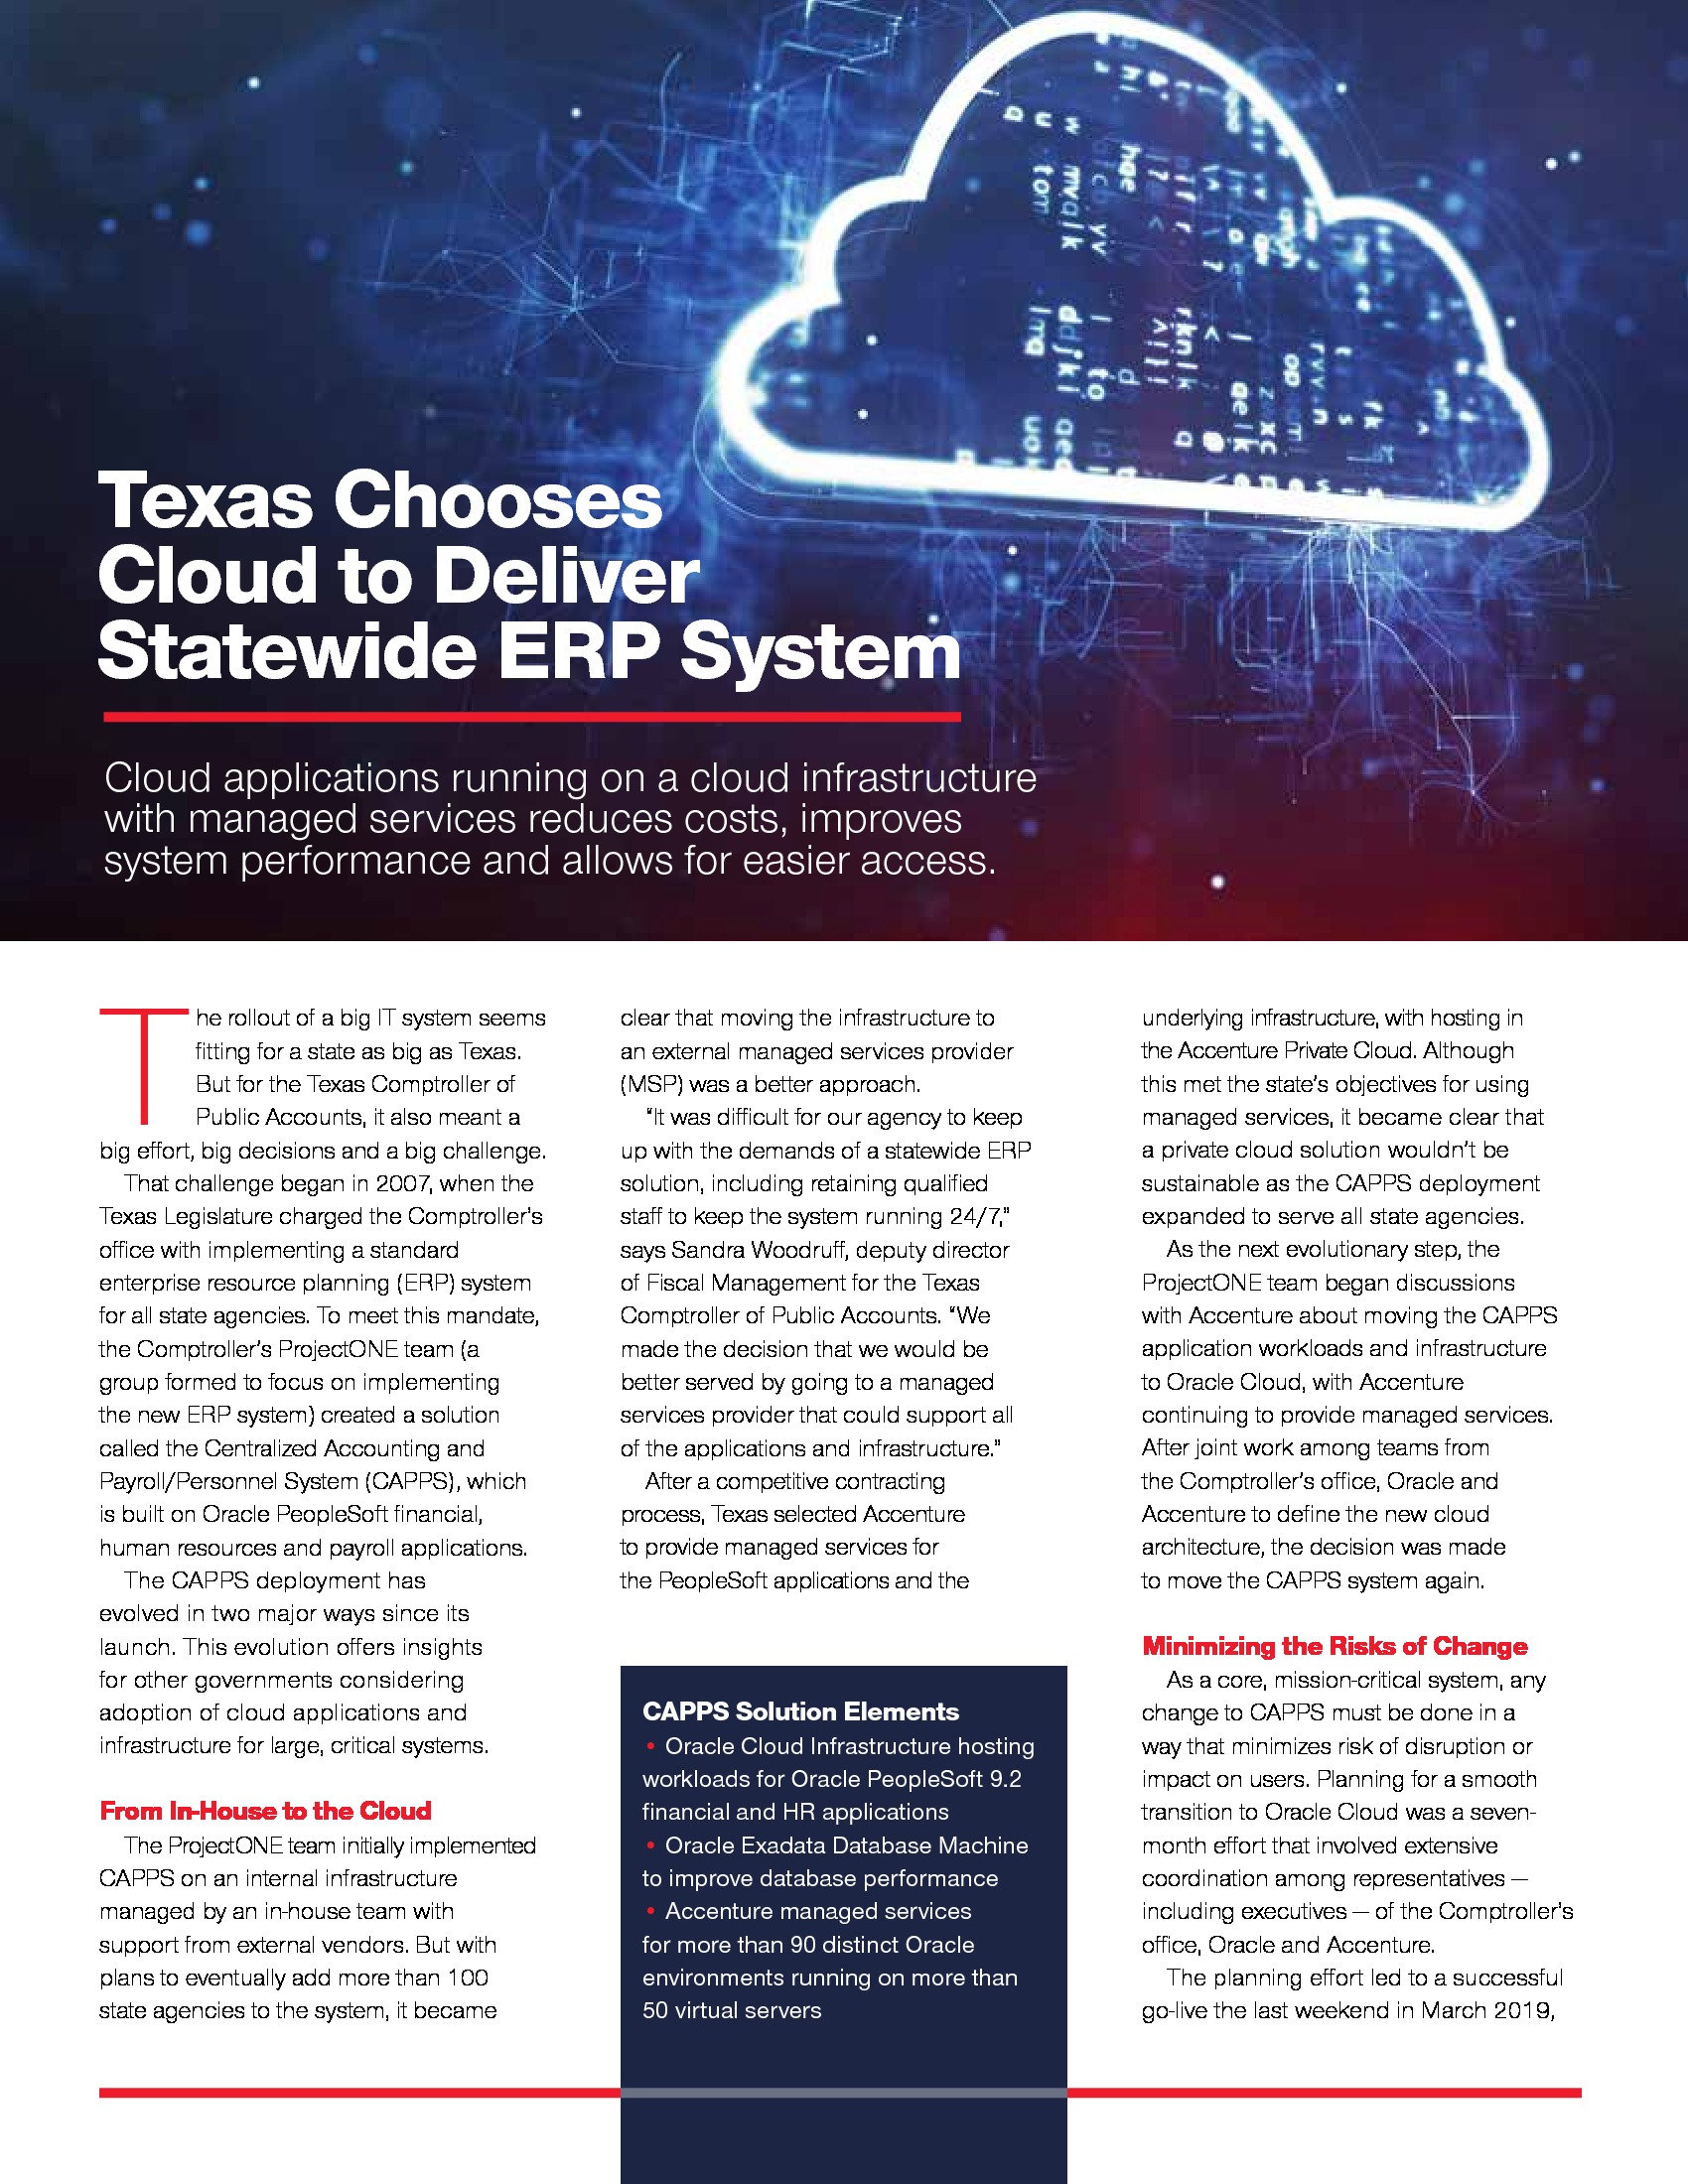 GT - Oracle - Case Study - 190801 - Texas Chooses Cloud